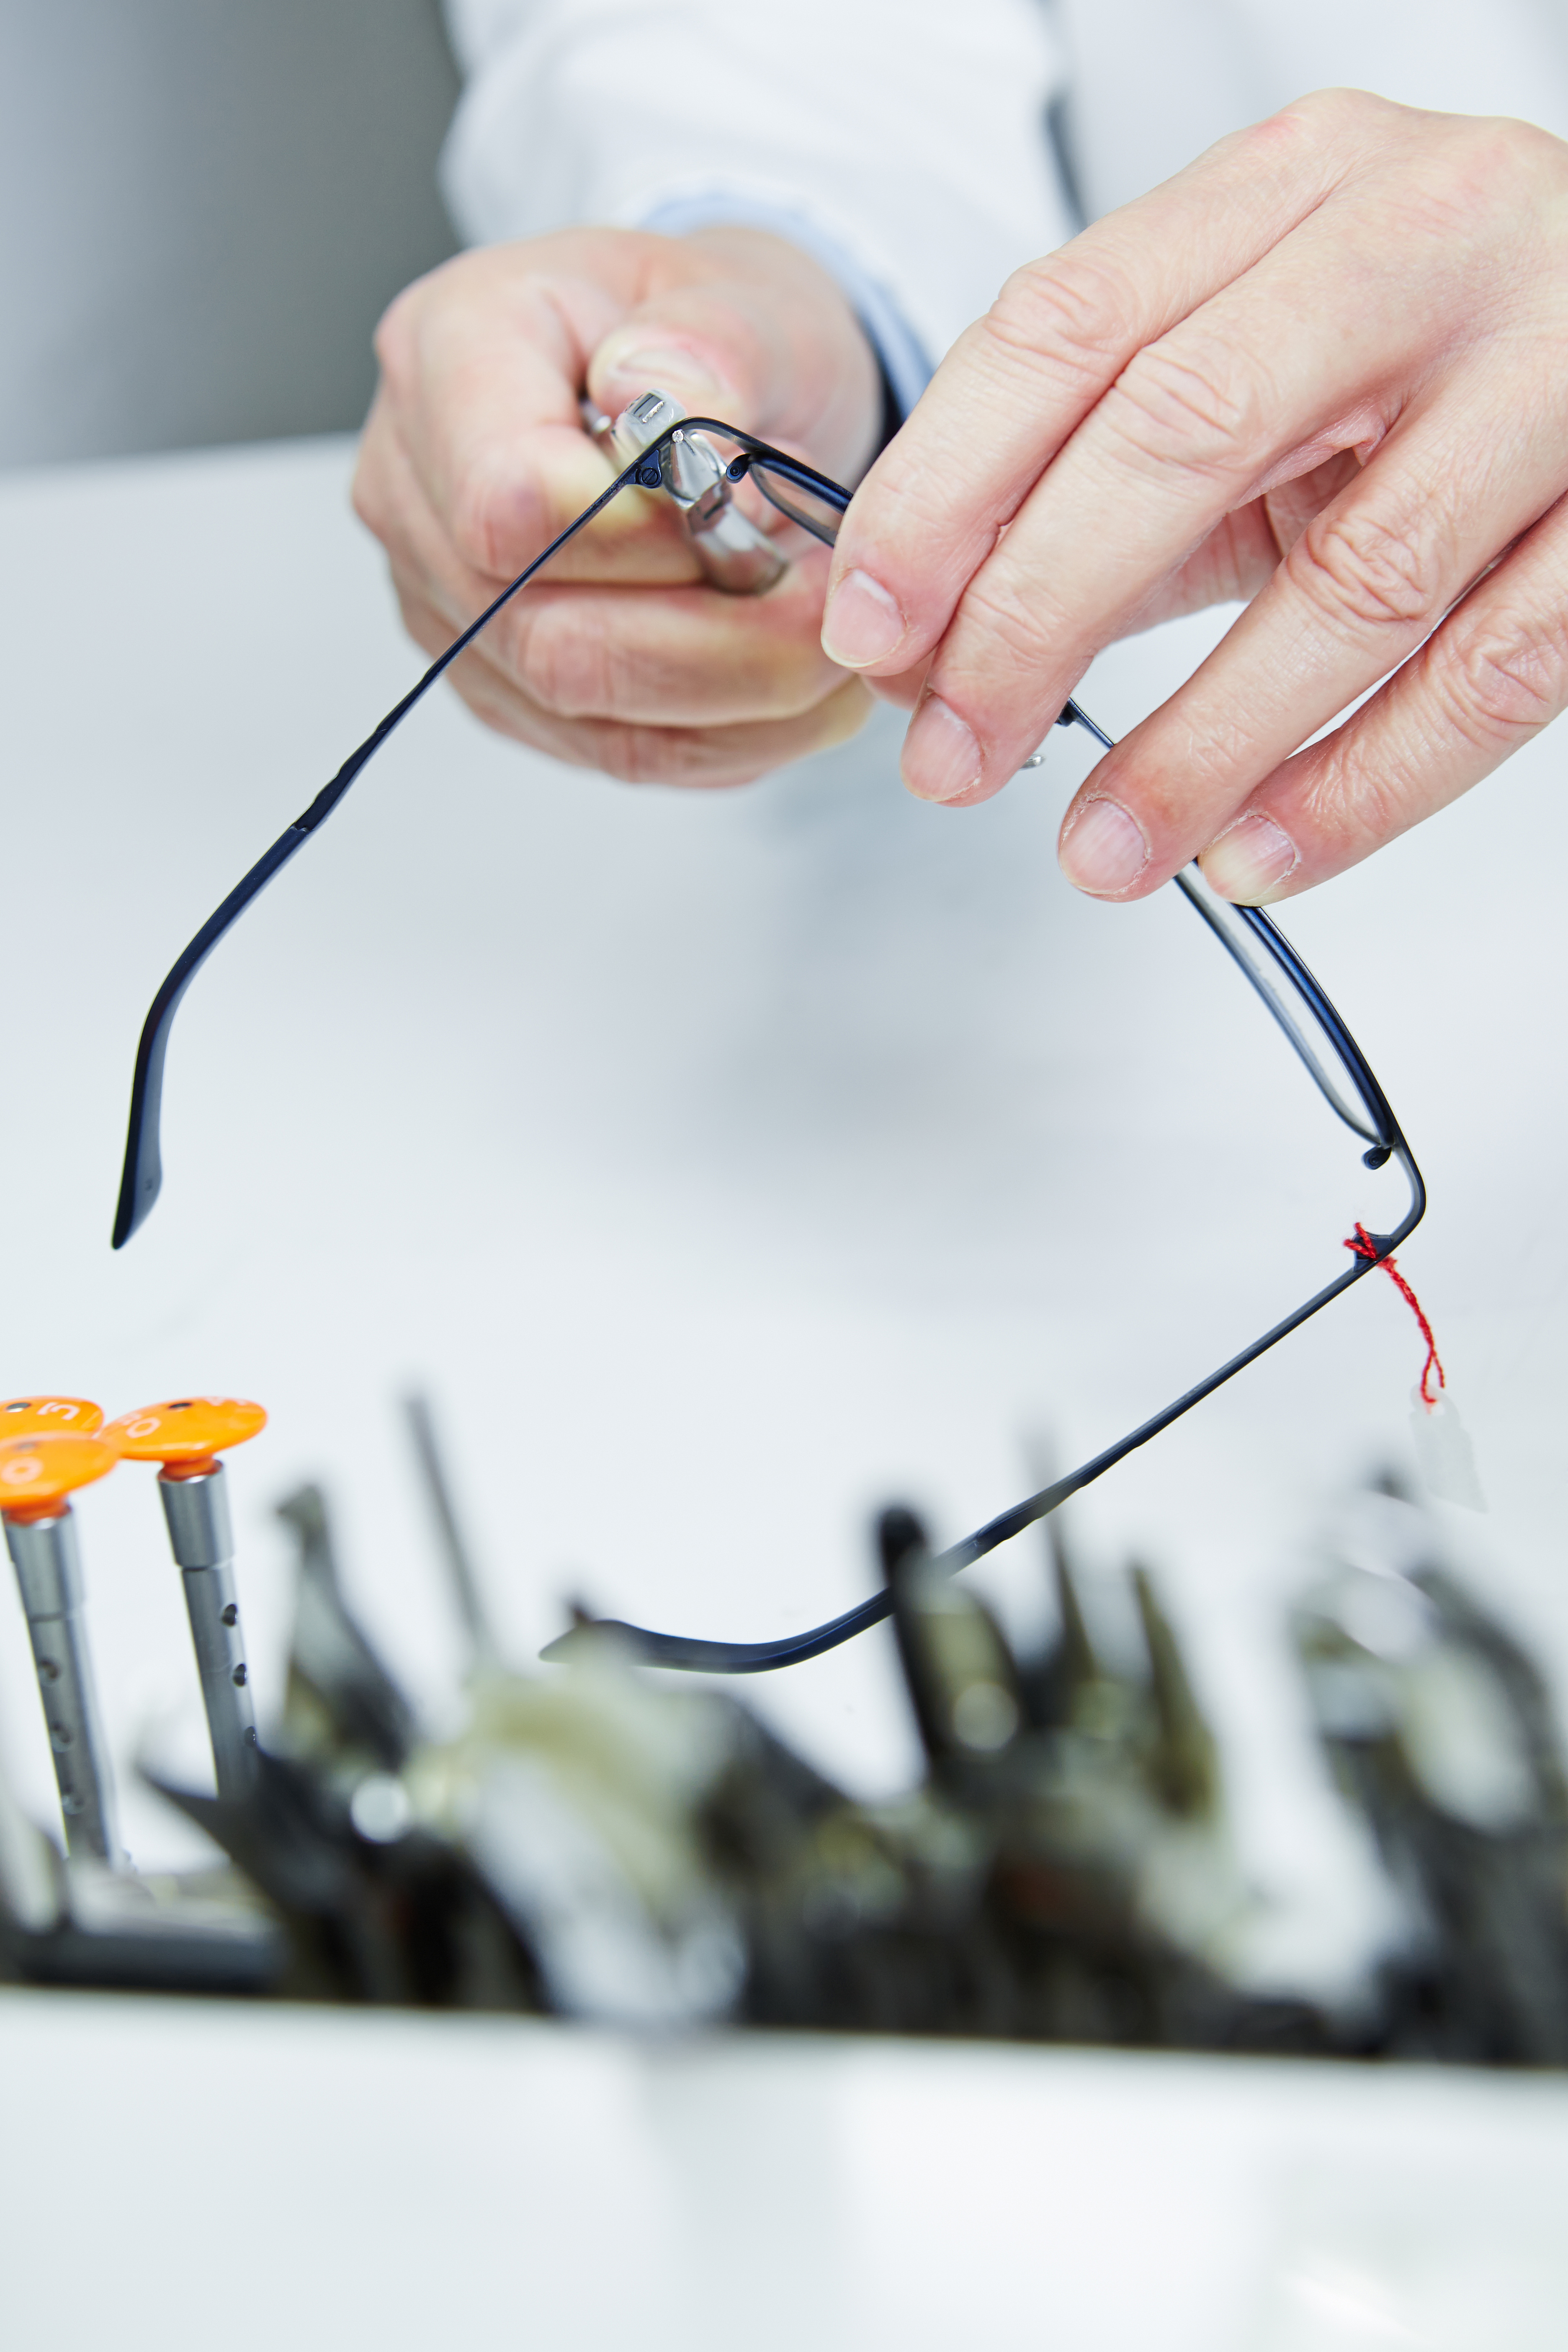 Workshop repair of glasses through hands of an optician